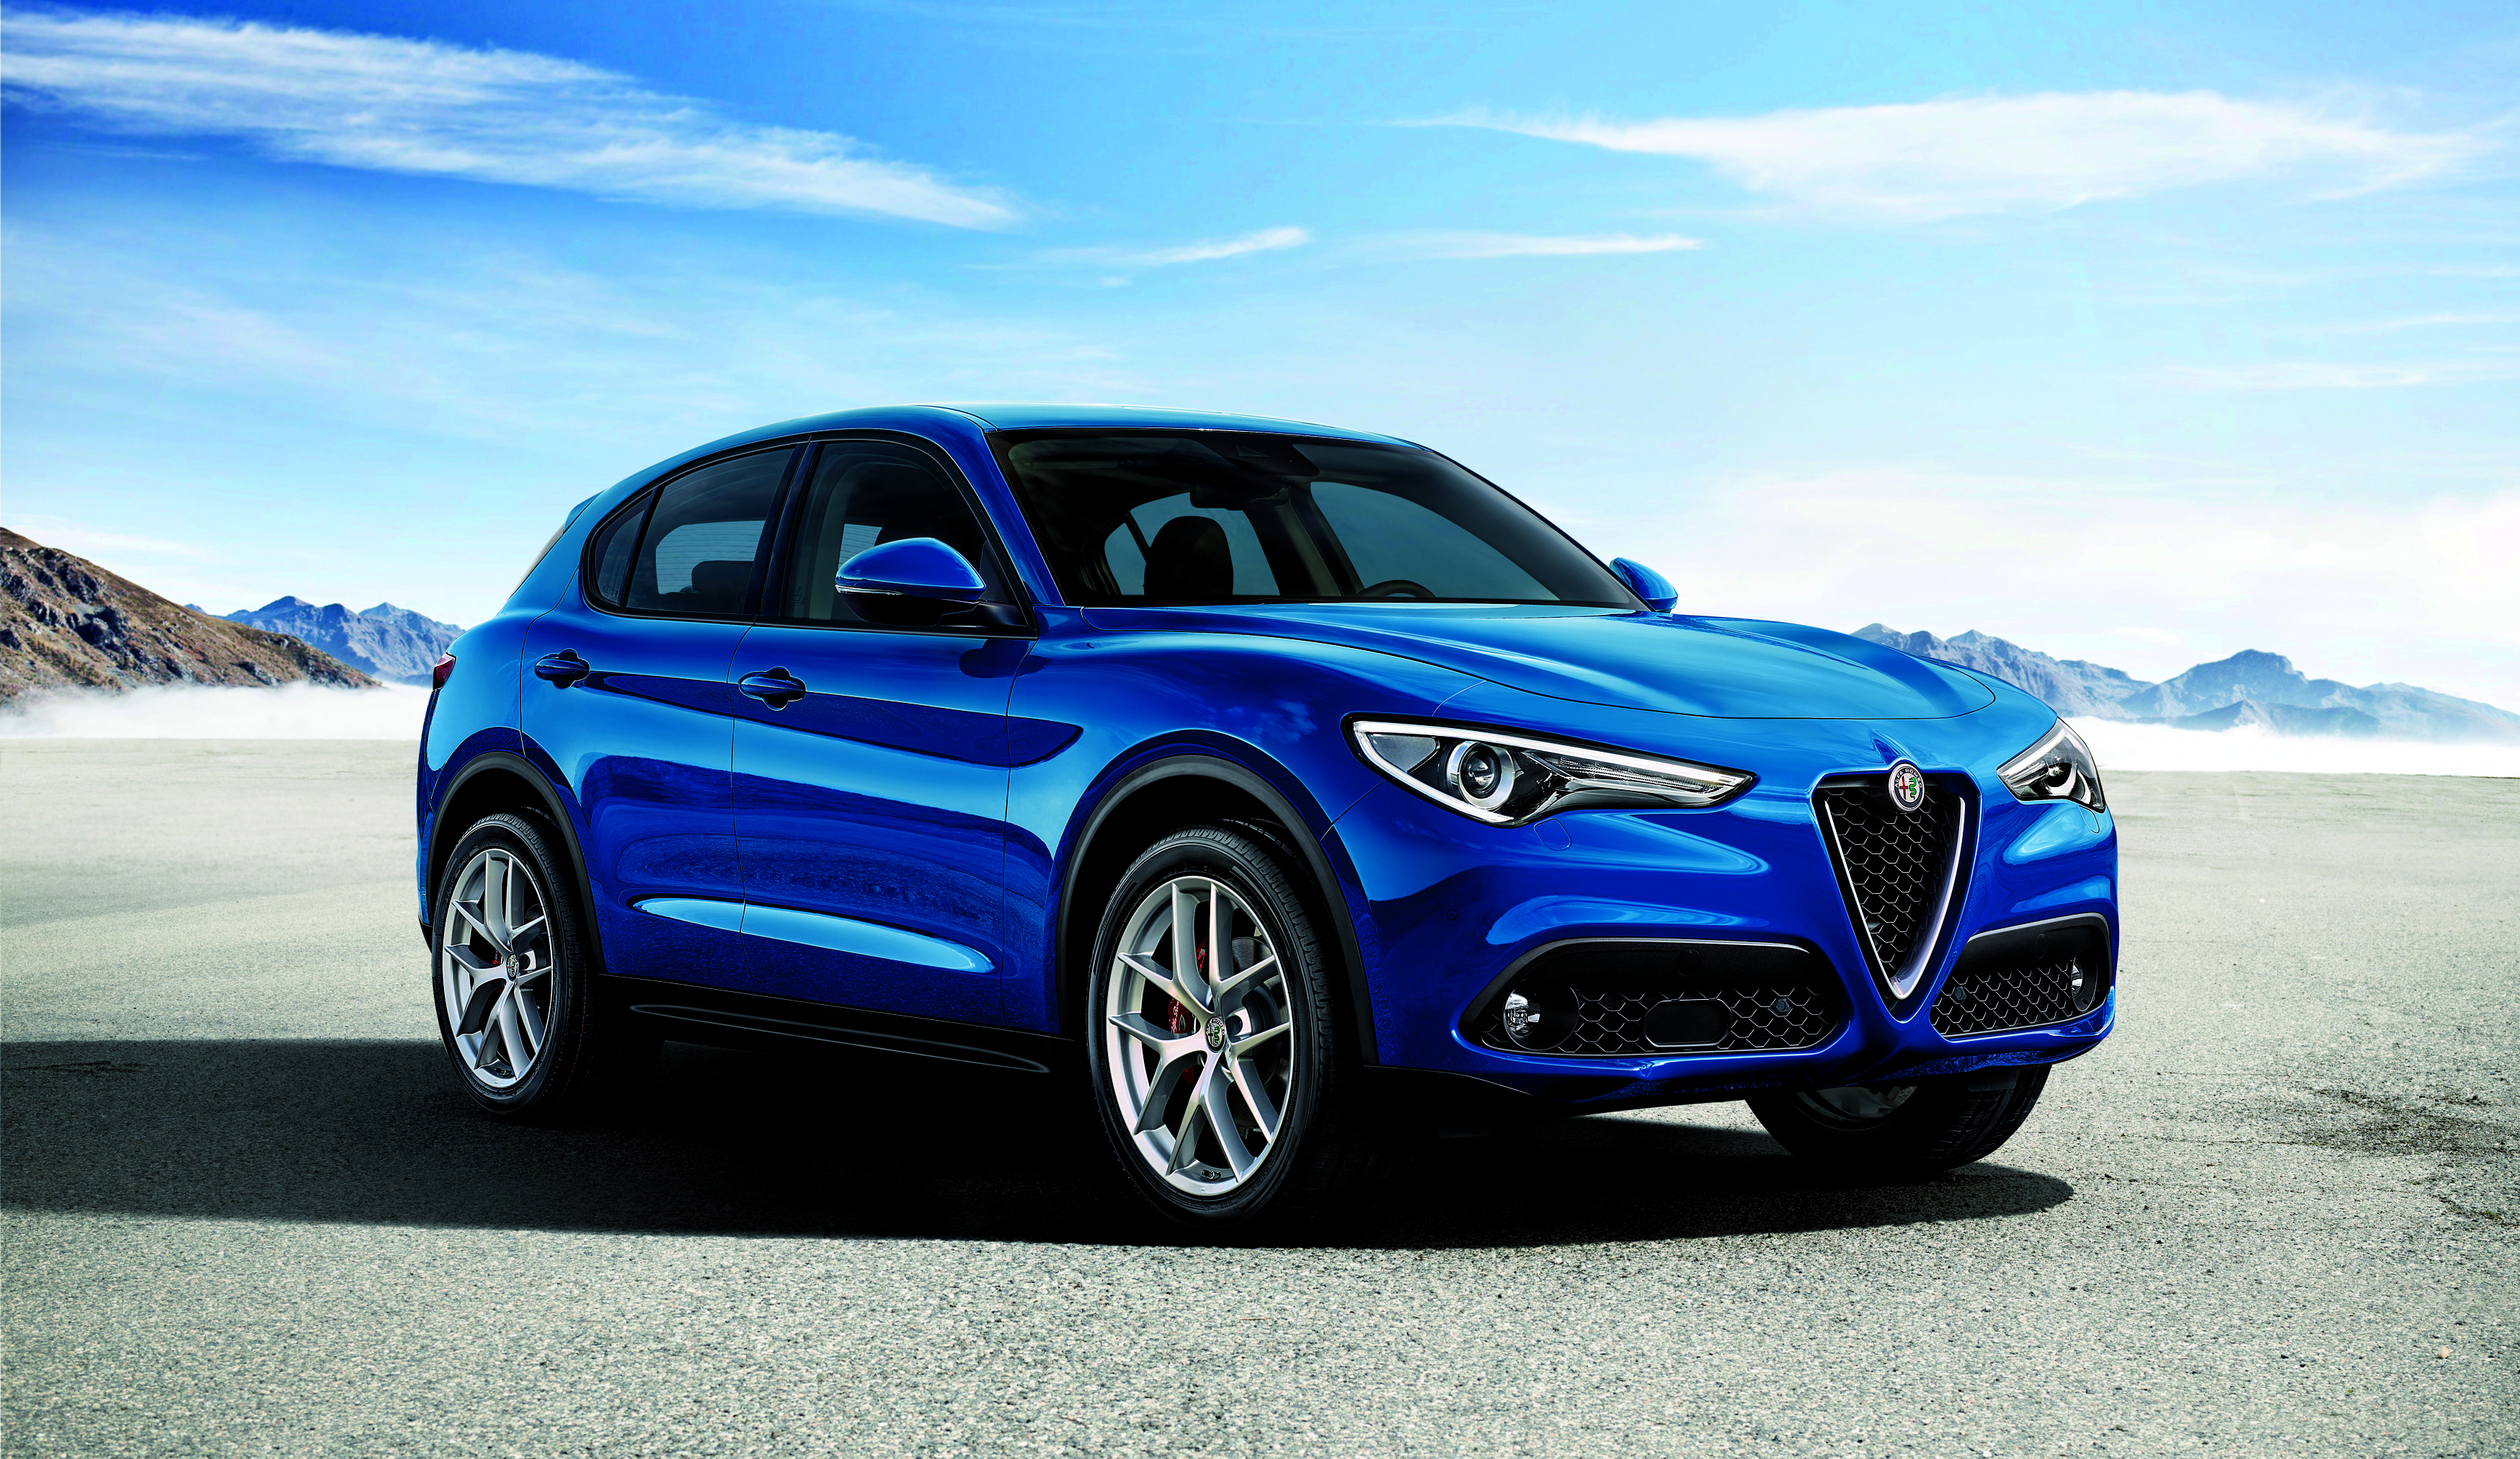 MOTORING: Alfa Romeo Stelvio: Putting the sport back into SUV